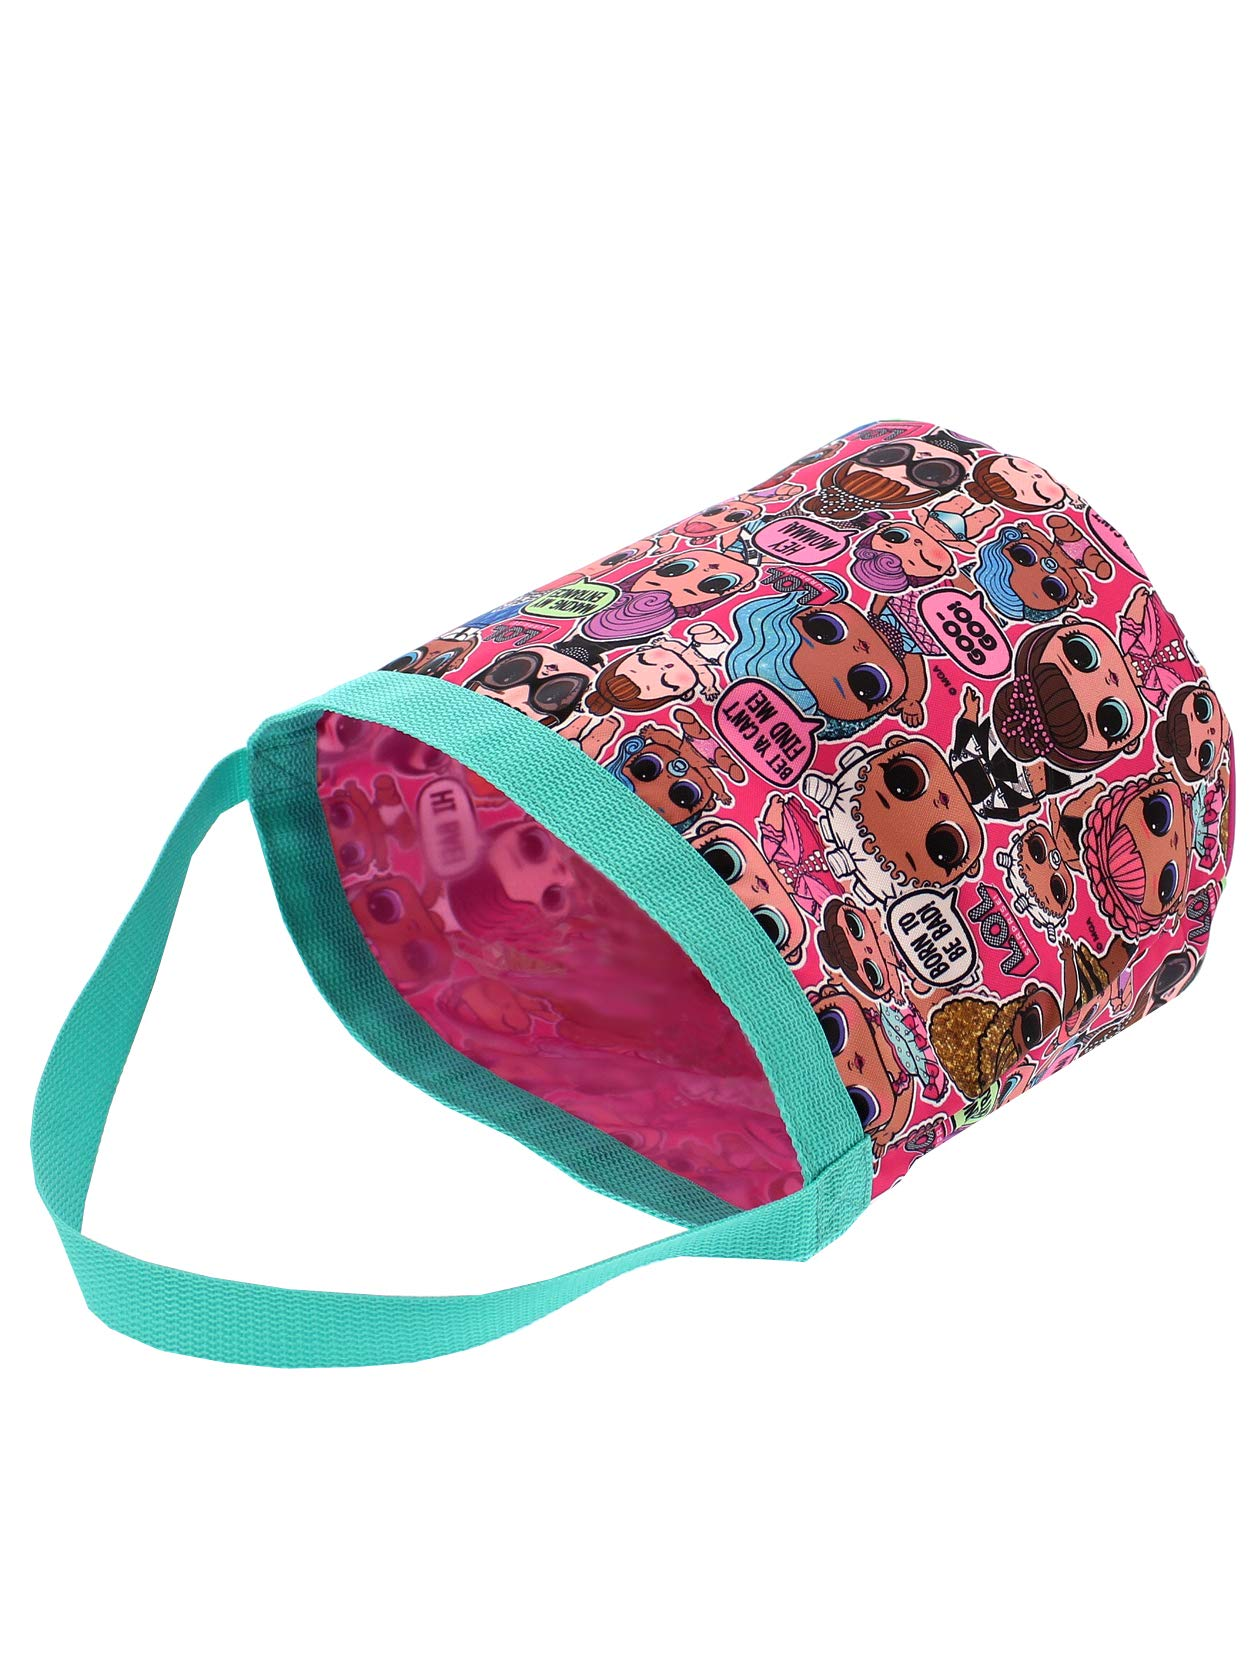 L.O.L. Surprise! Girls Collapsible Nylon Beach Bucket Toy Storage Gift Tote Bag (One Size, Pink) by L.O.L. Surprise! (Image #5)